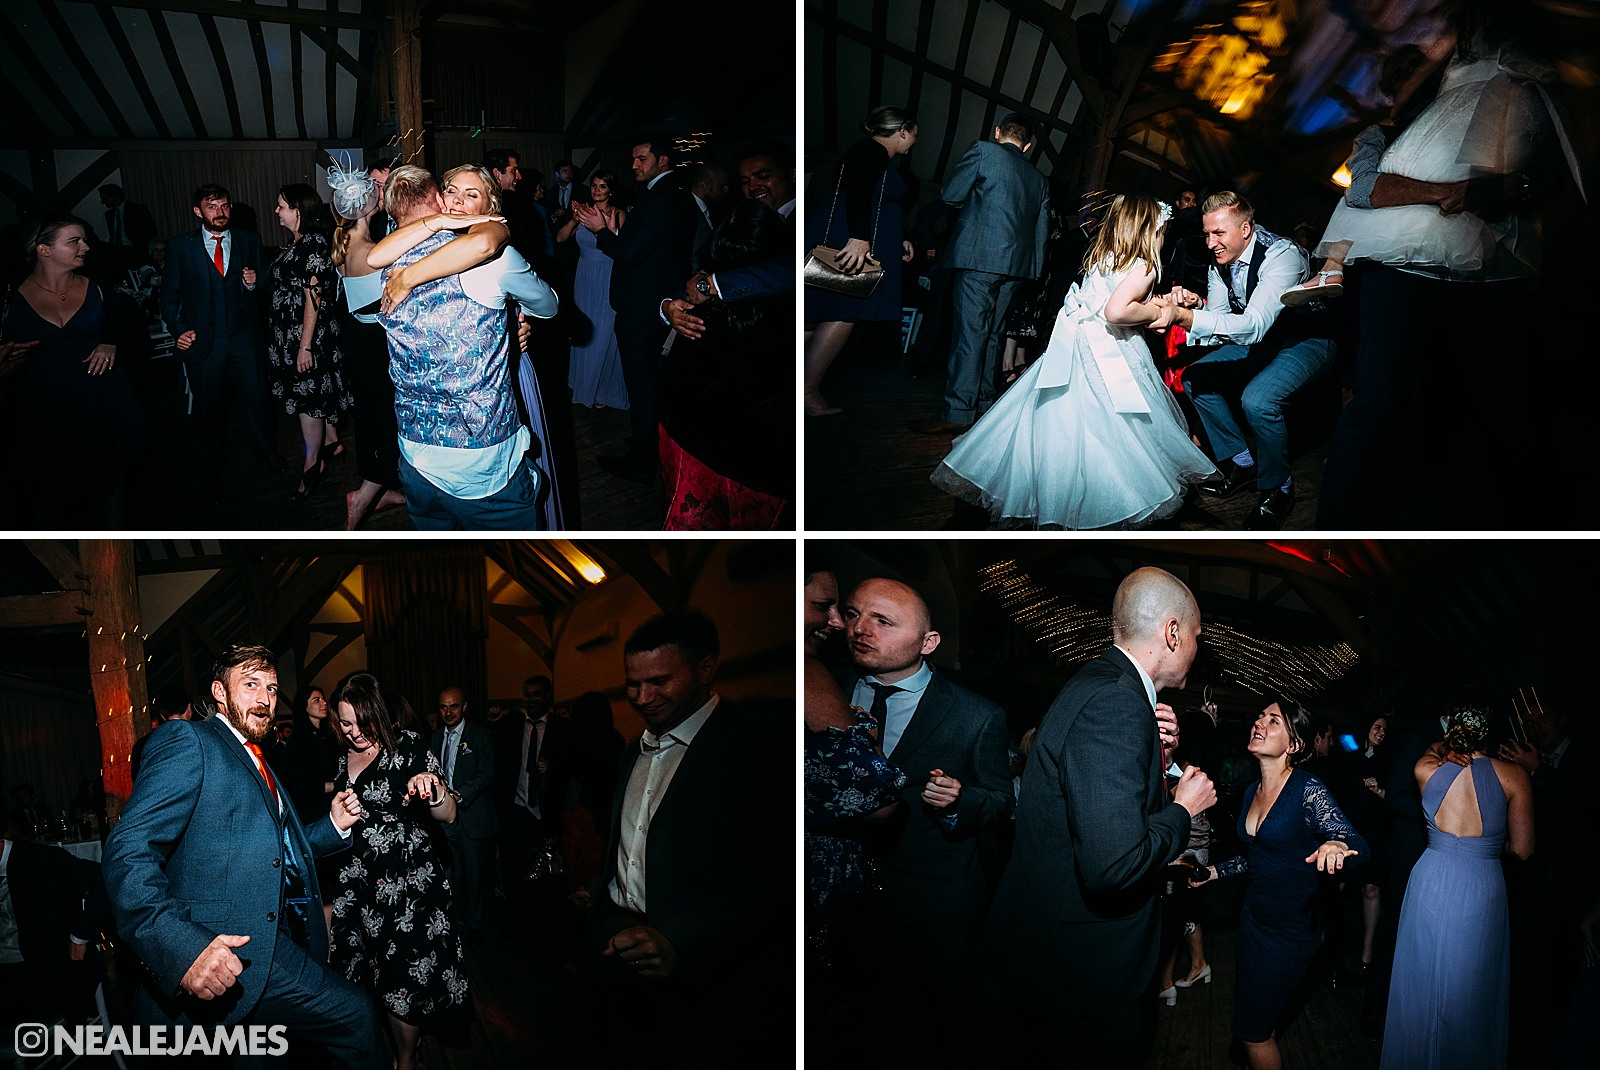 Dancing at a wedding party